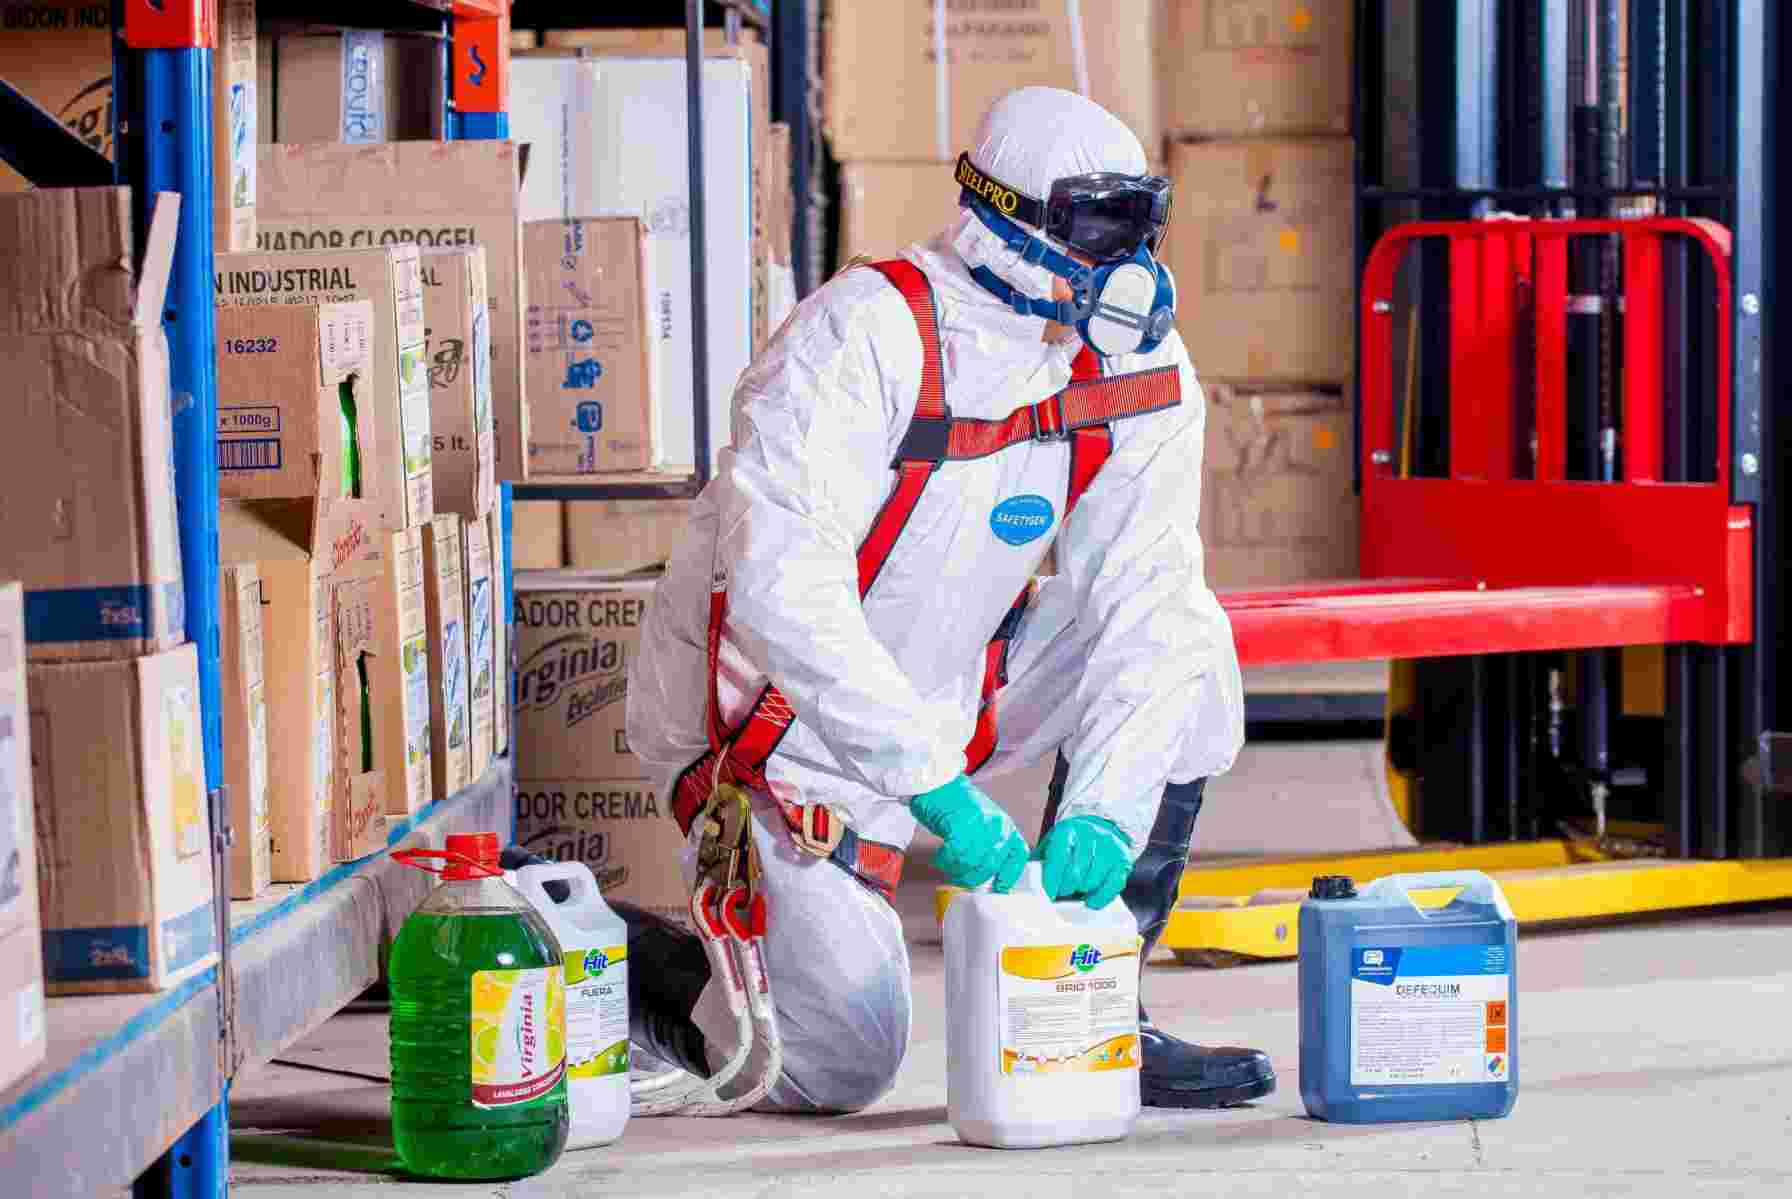 How to find and hire the right pest control service?